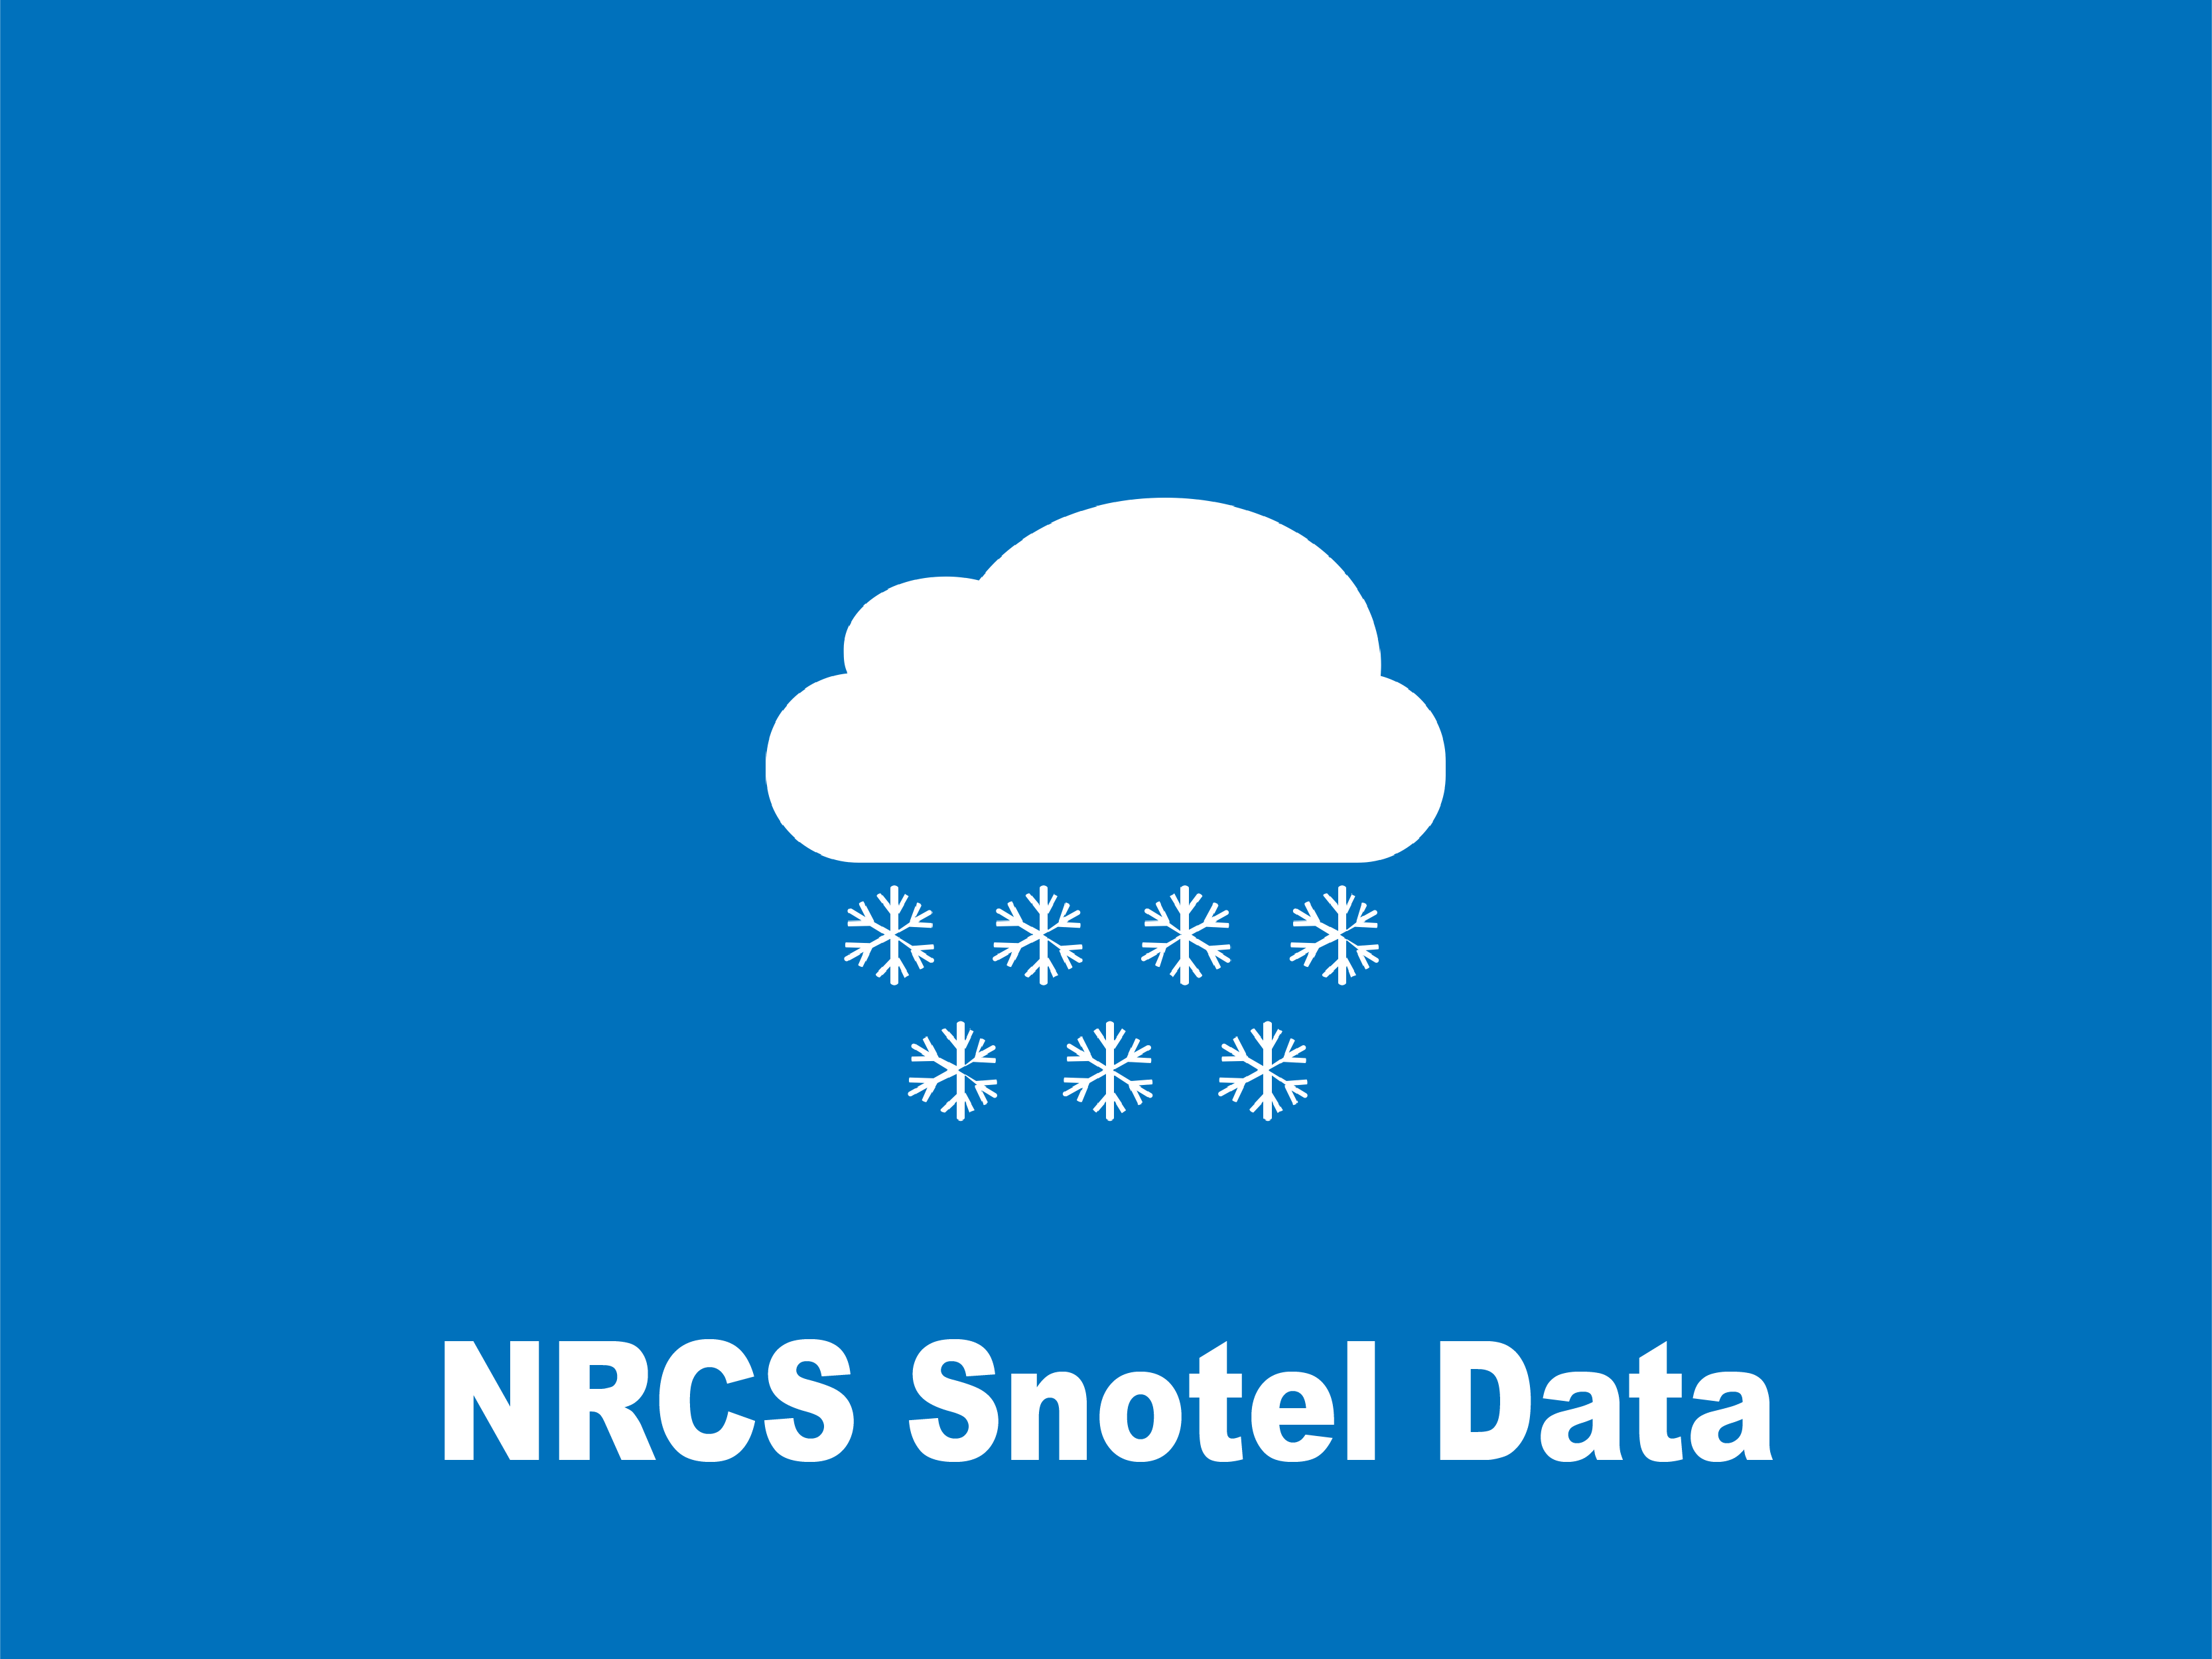 NRCS Snotel Data Icon